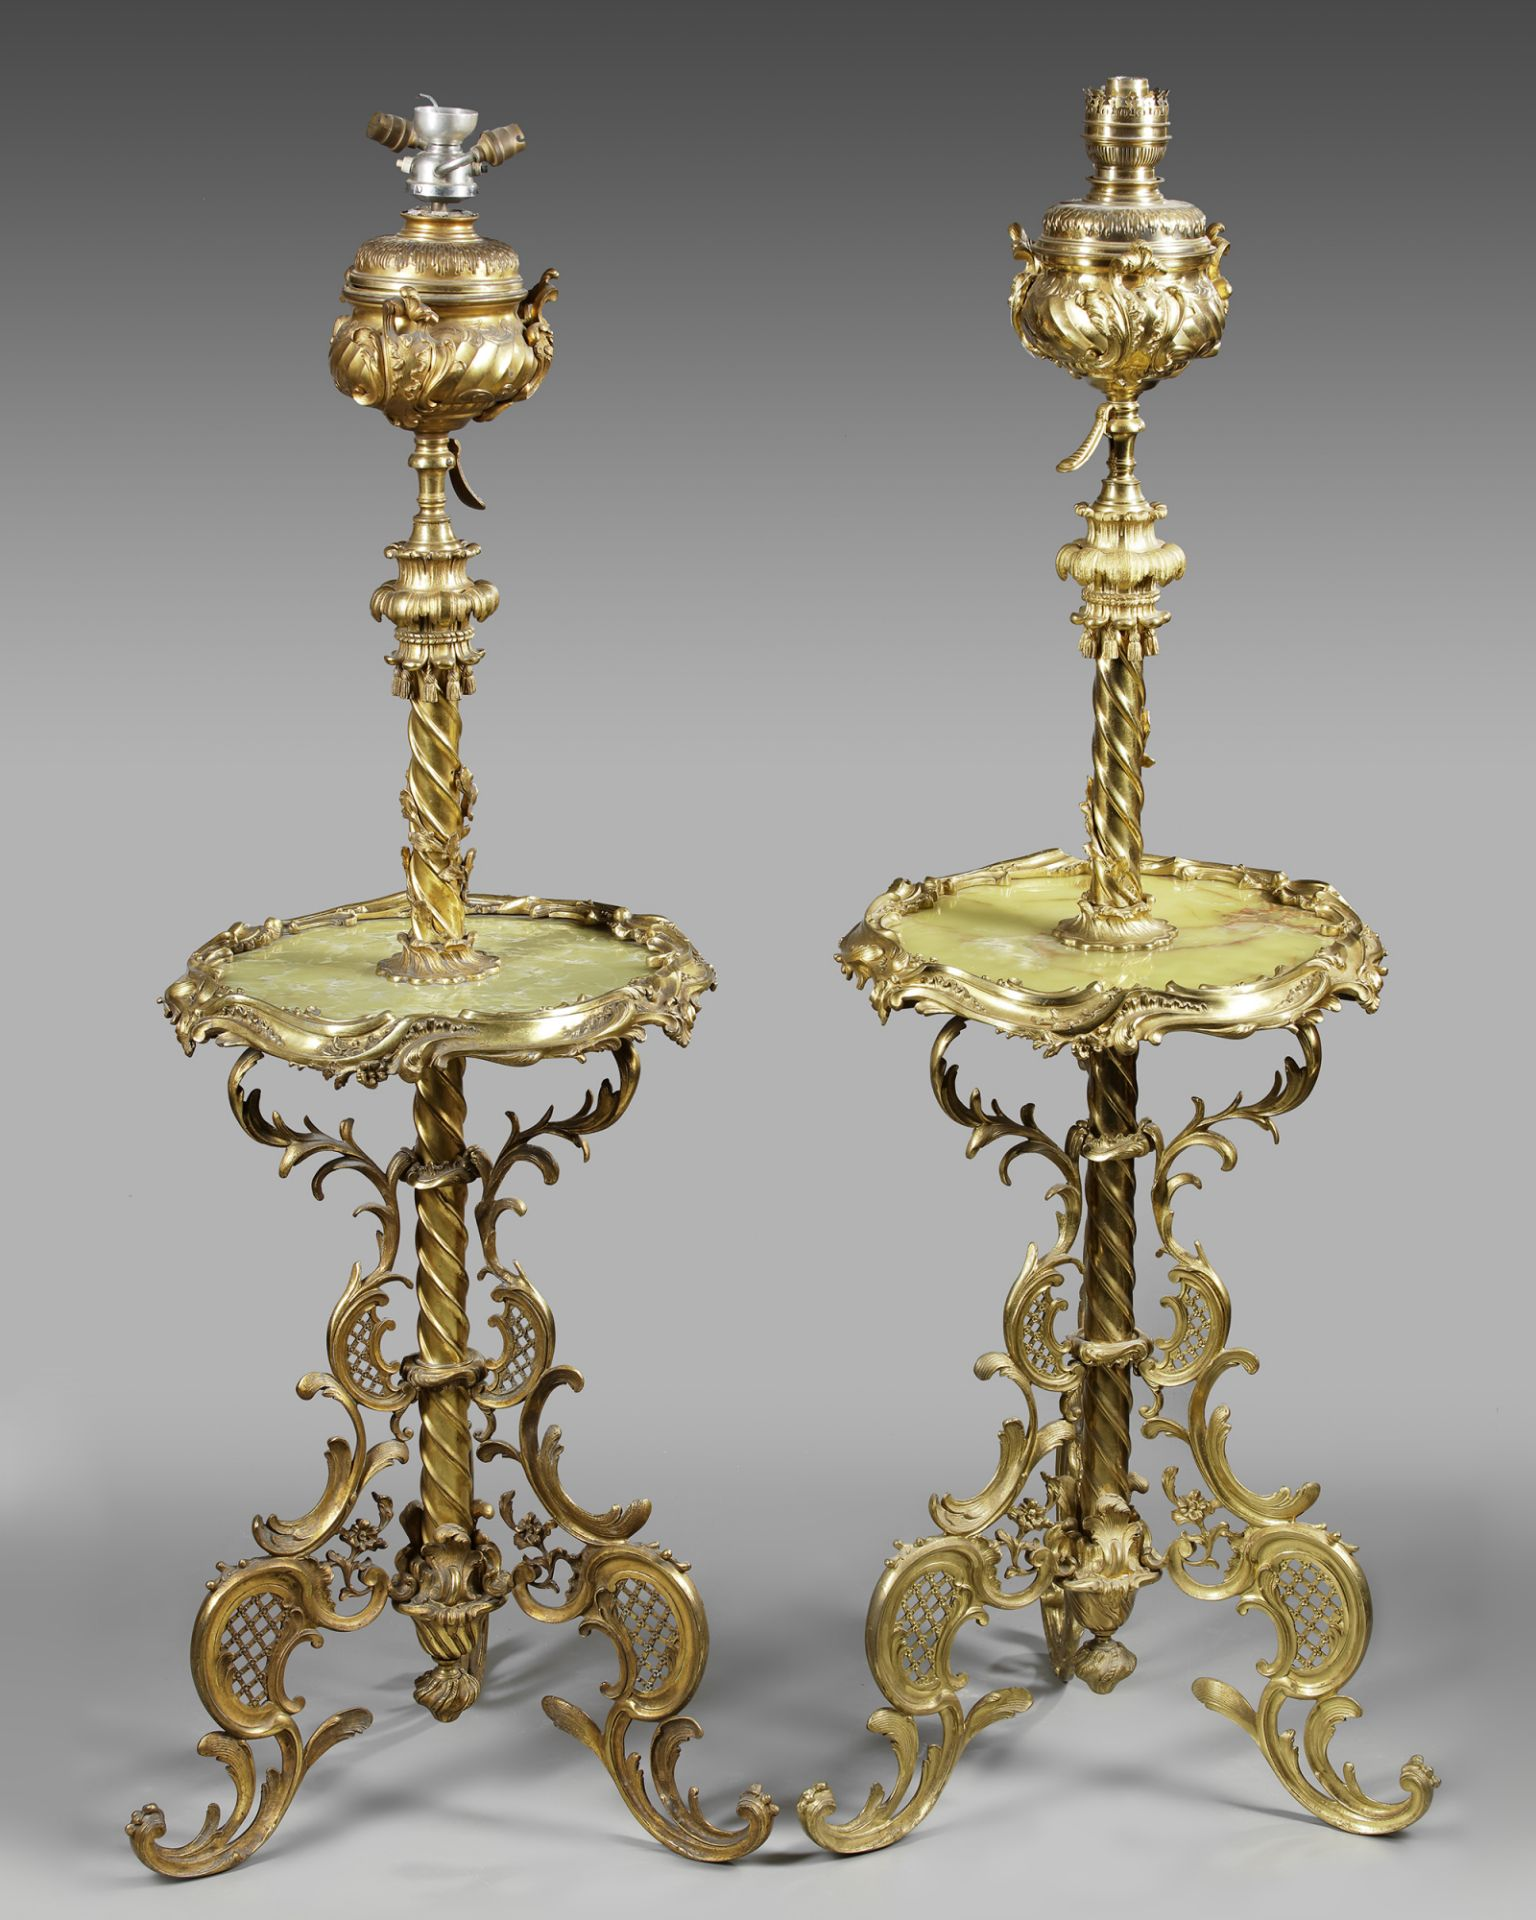 A PAIR OF ORMOLU FLOOR LAMPS, 19TH CENTURY - Image 2 of 2